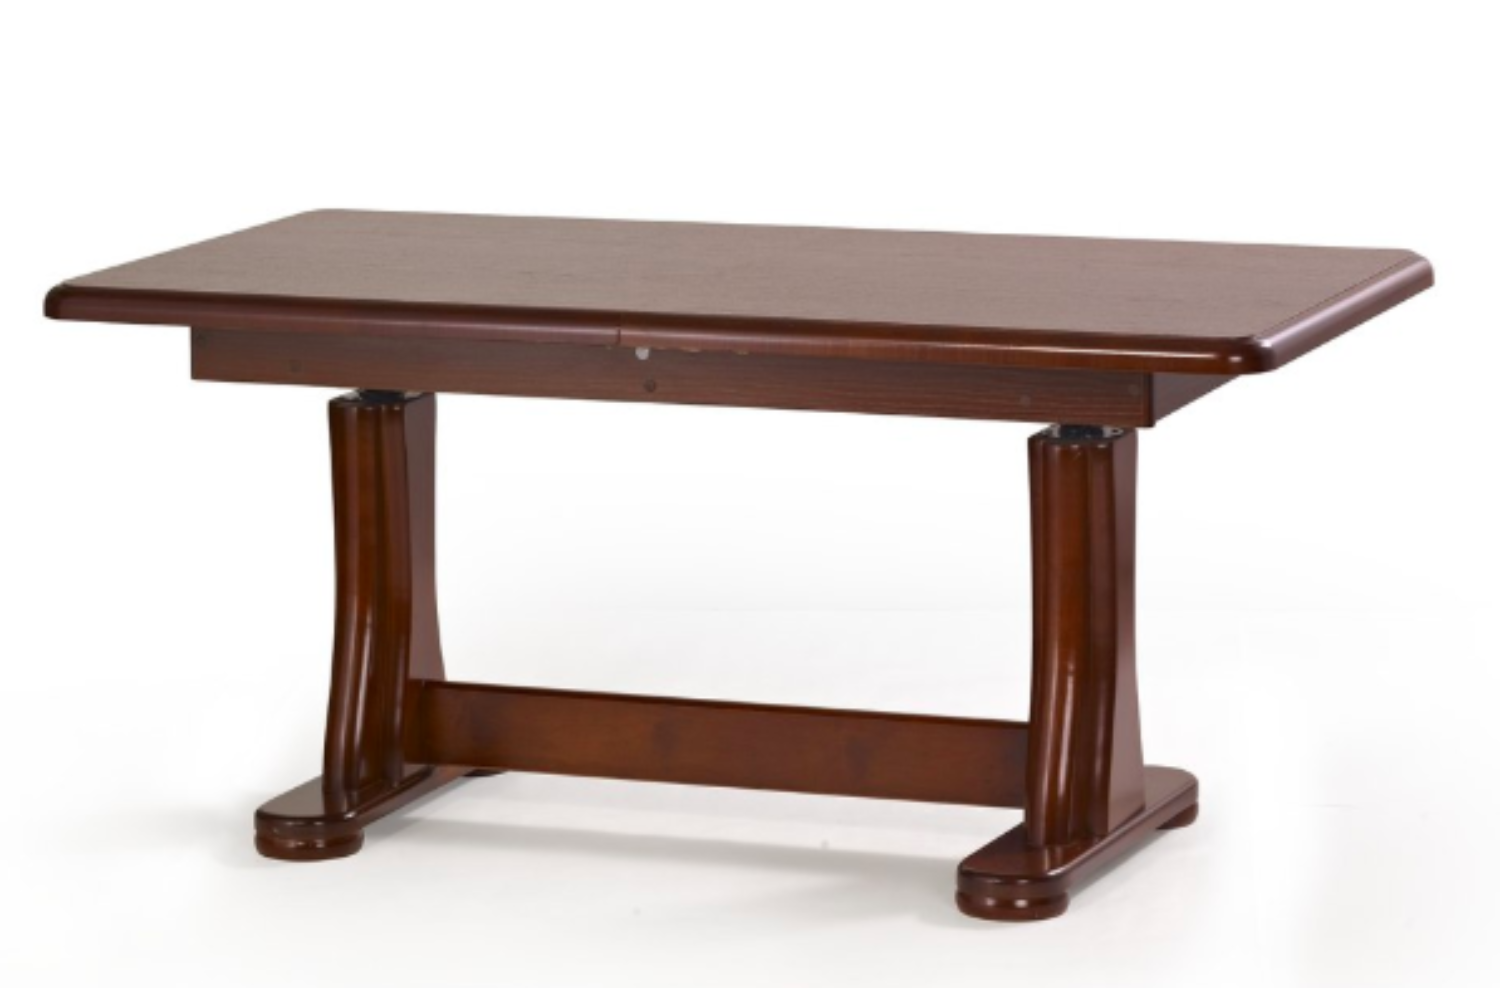 TYMON 2 lift coffee table colour: dark walnut